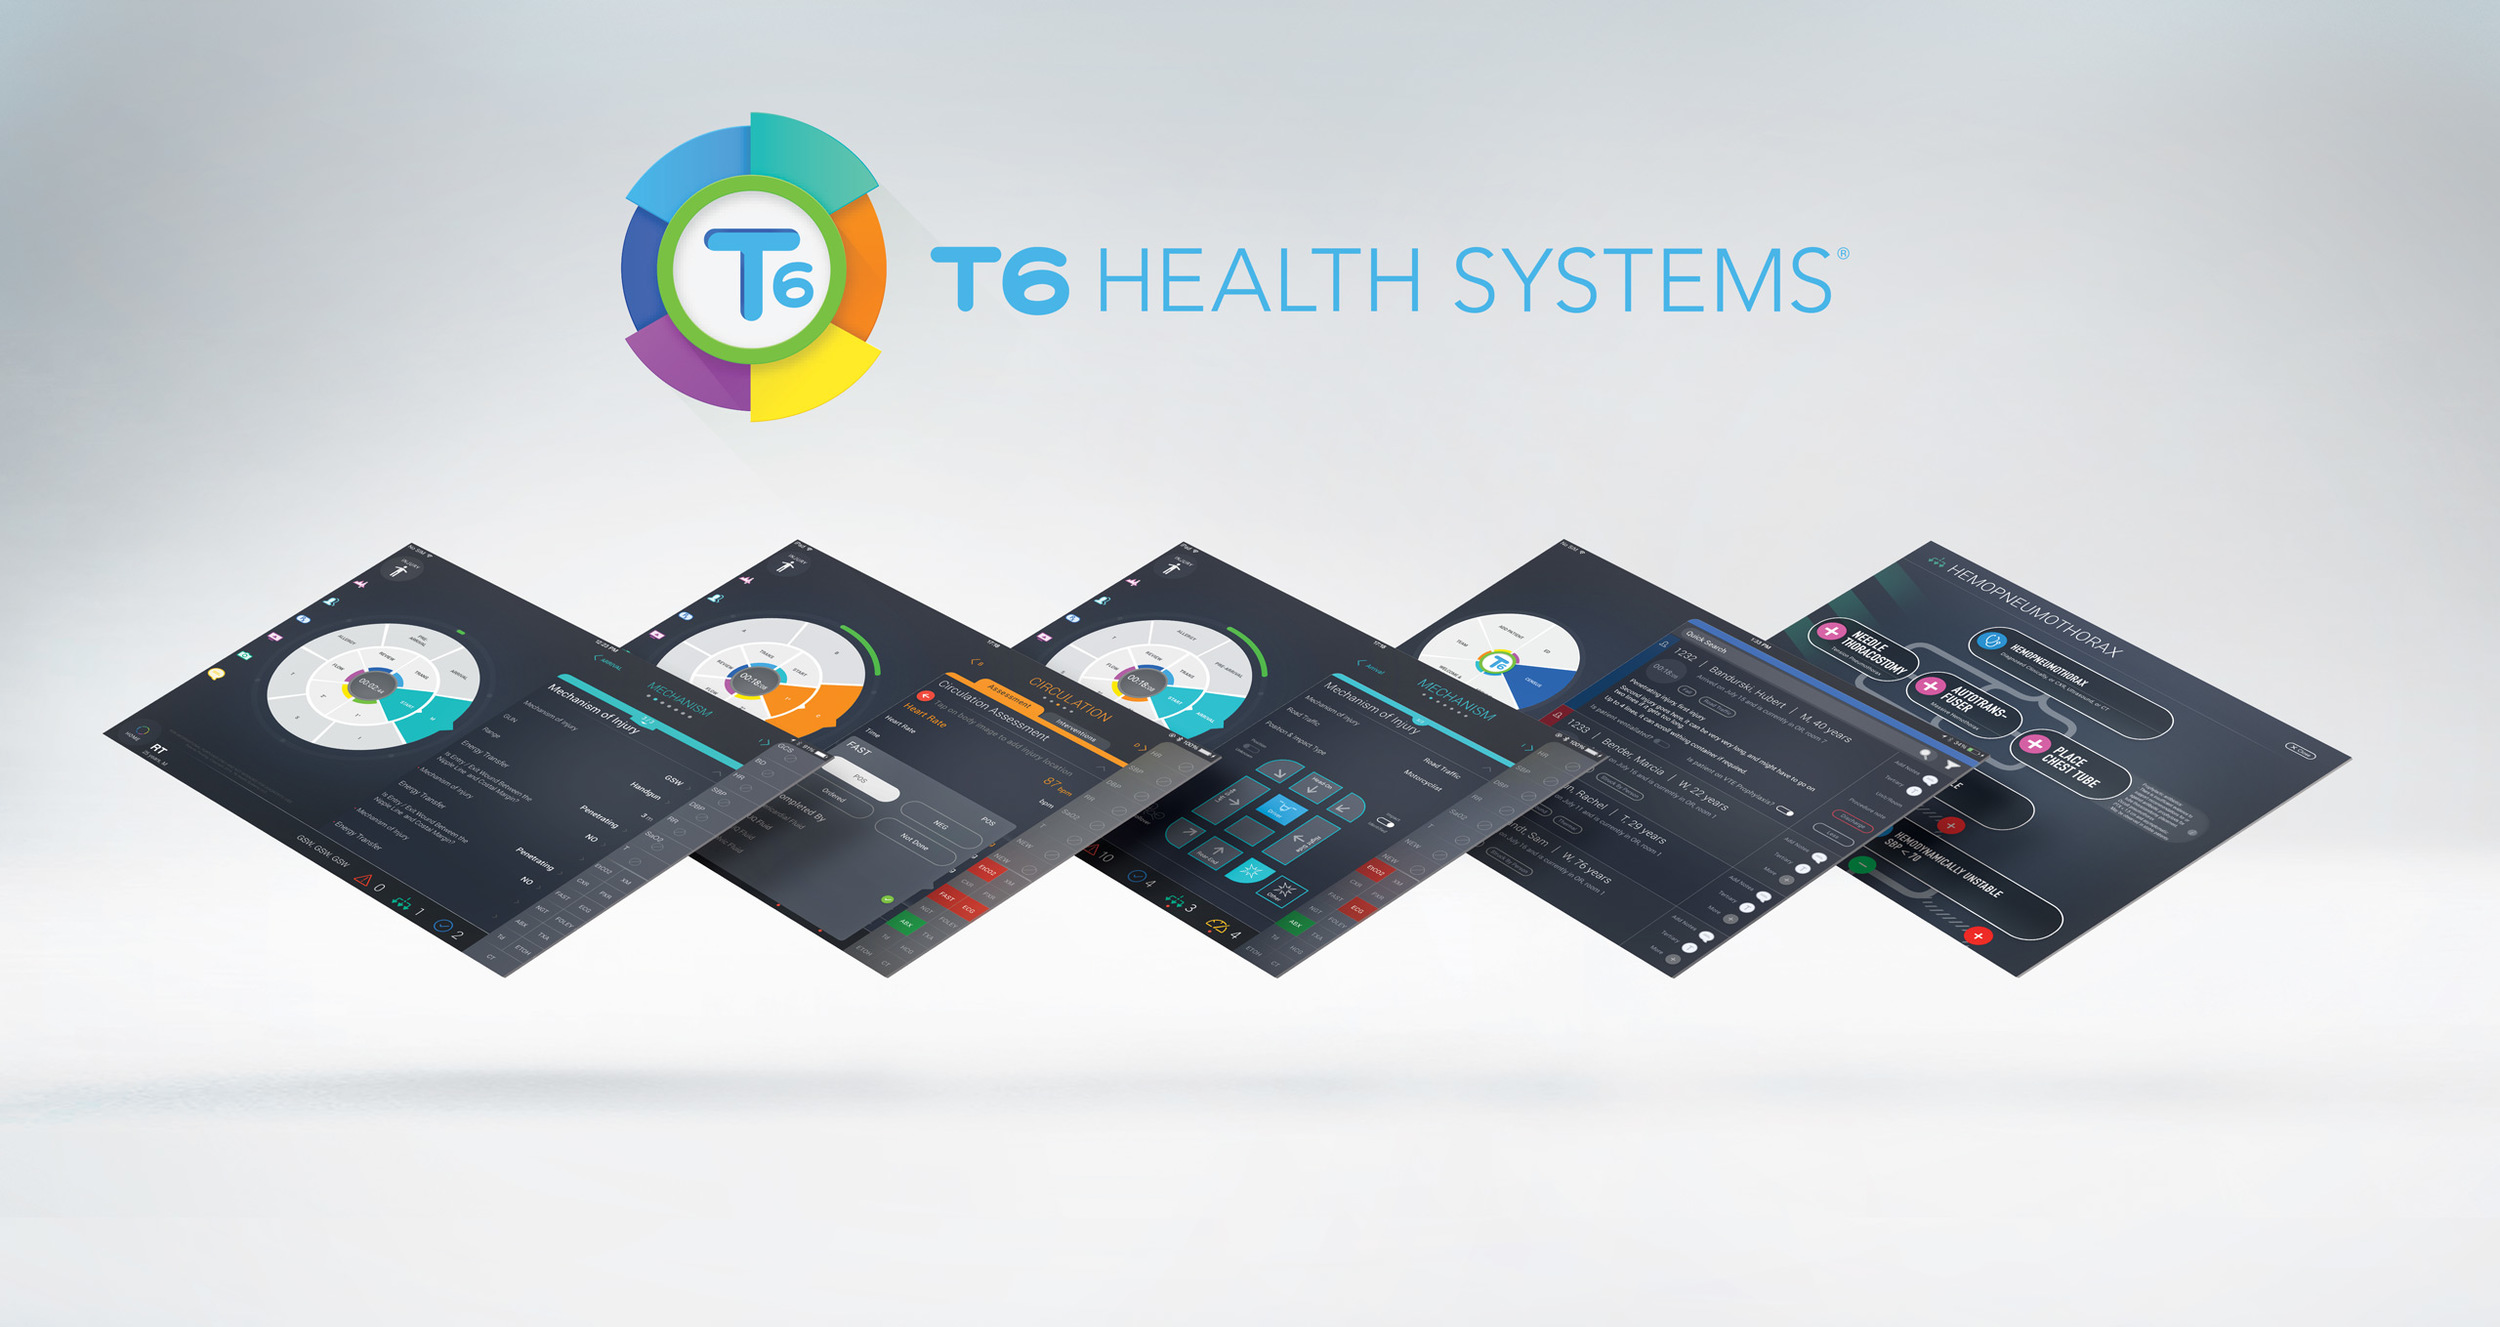 T6 Health Systems App